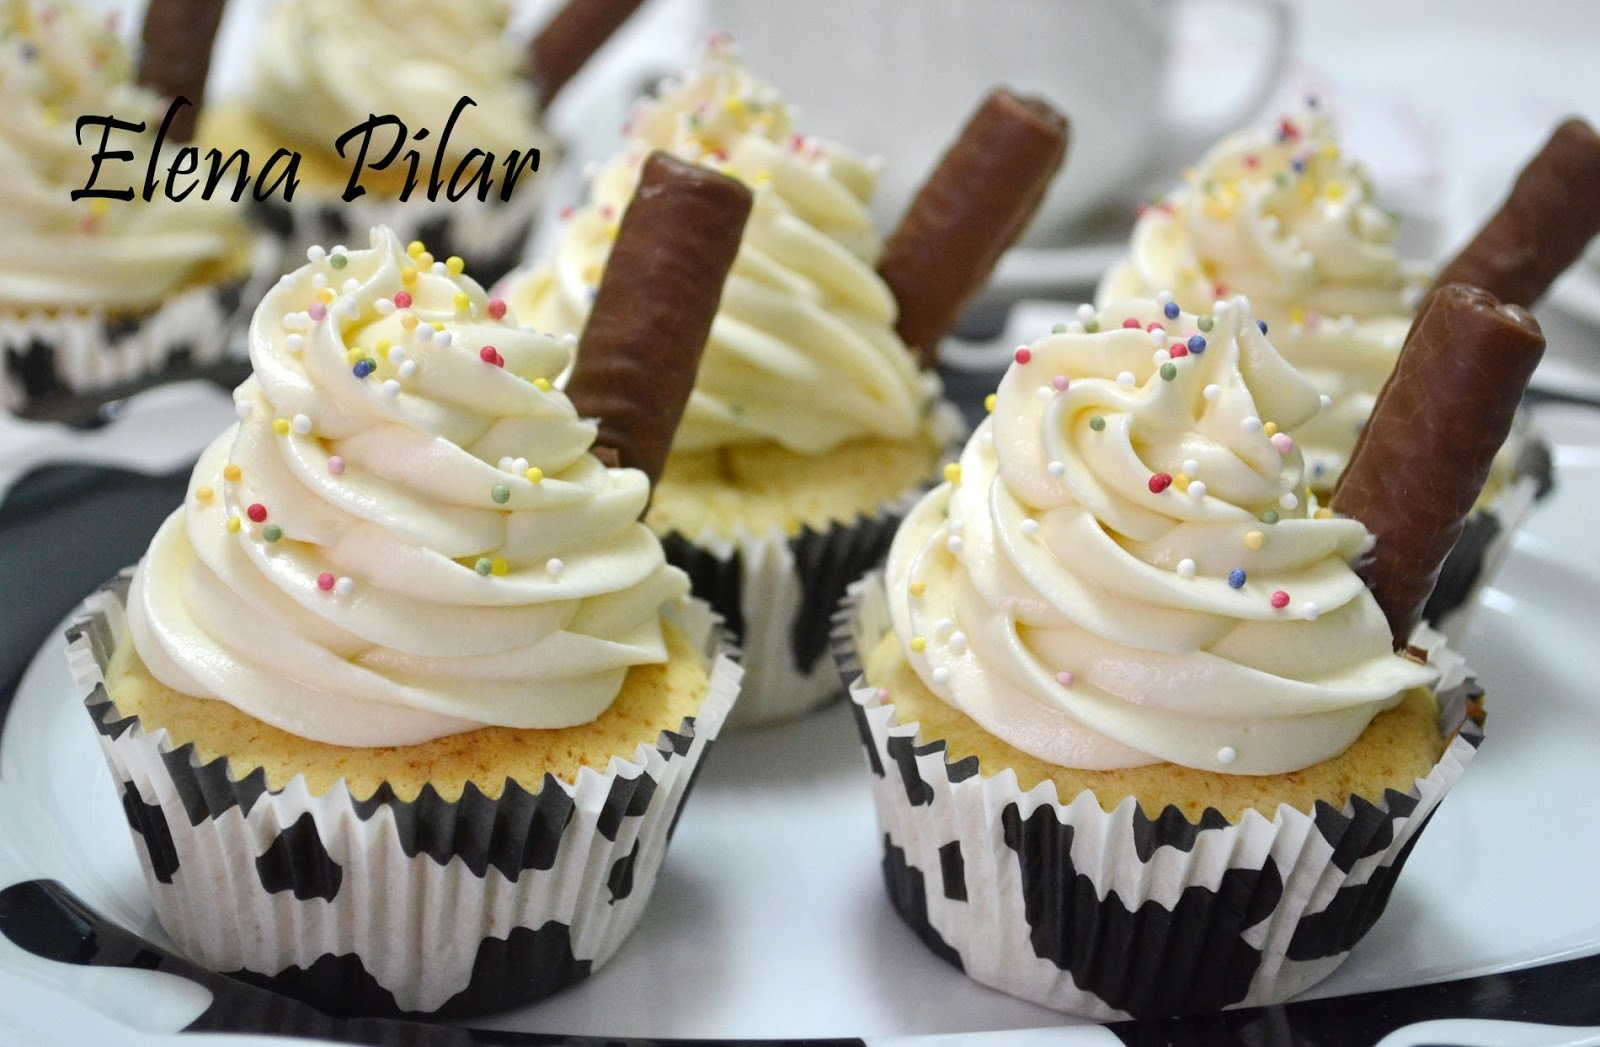 Cupcakes de chocolate blanco con frosting de queso y chocolate blanco